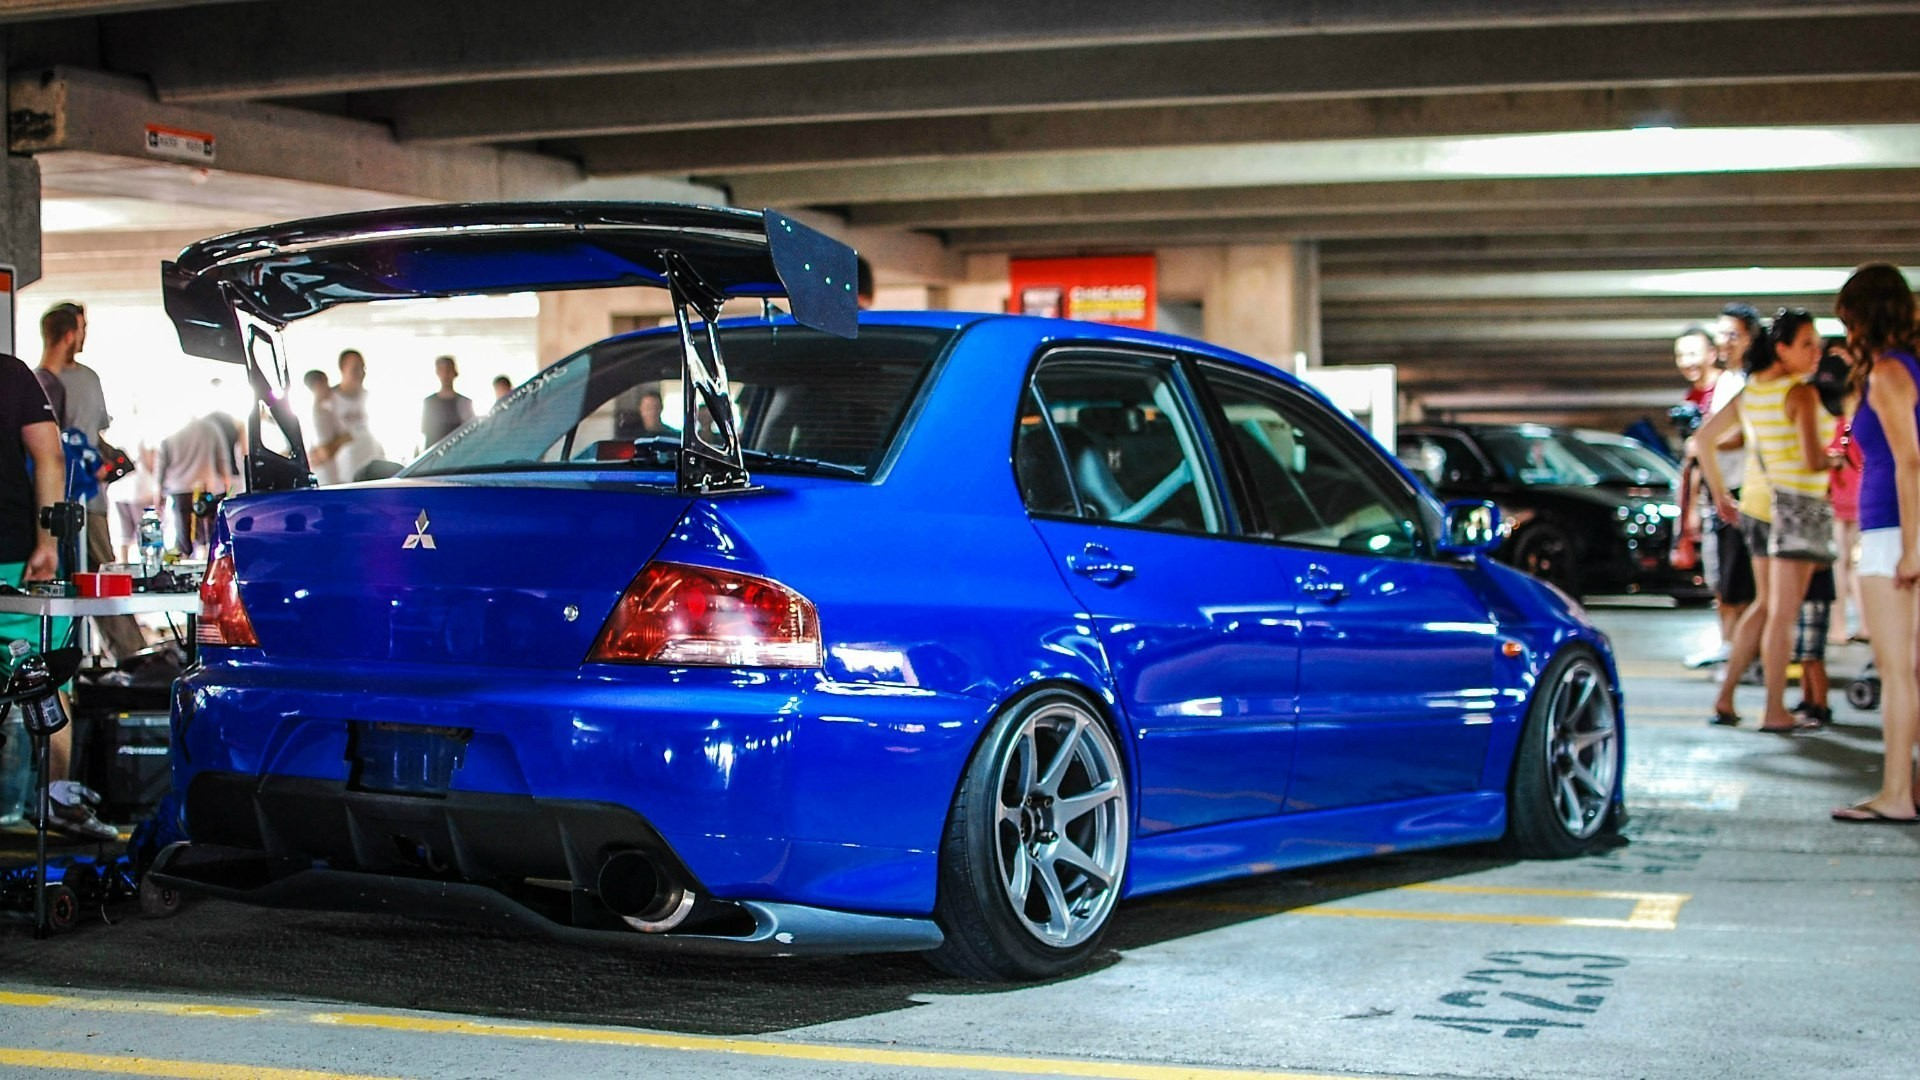 Res: 1920x1080, car, JDM, Mitsubishi, Blue Cars Wallpapers HD / Desktop and Mobile  Backgrounds